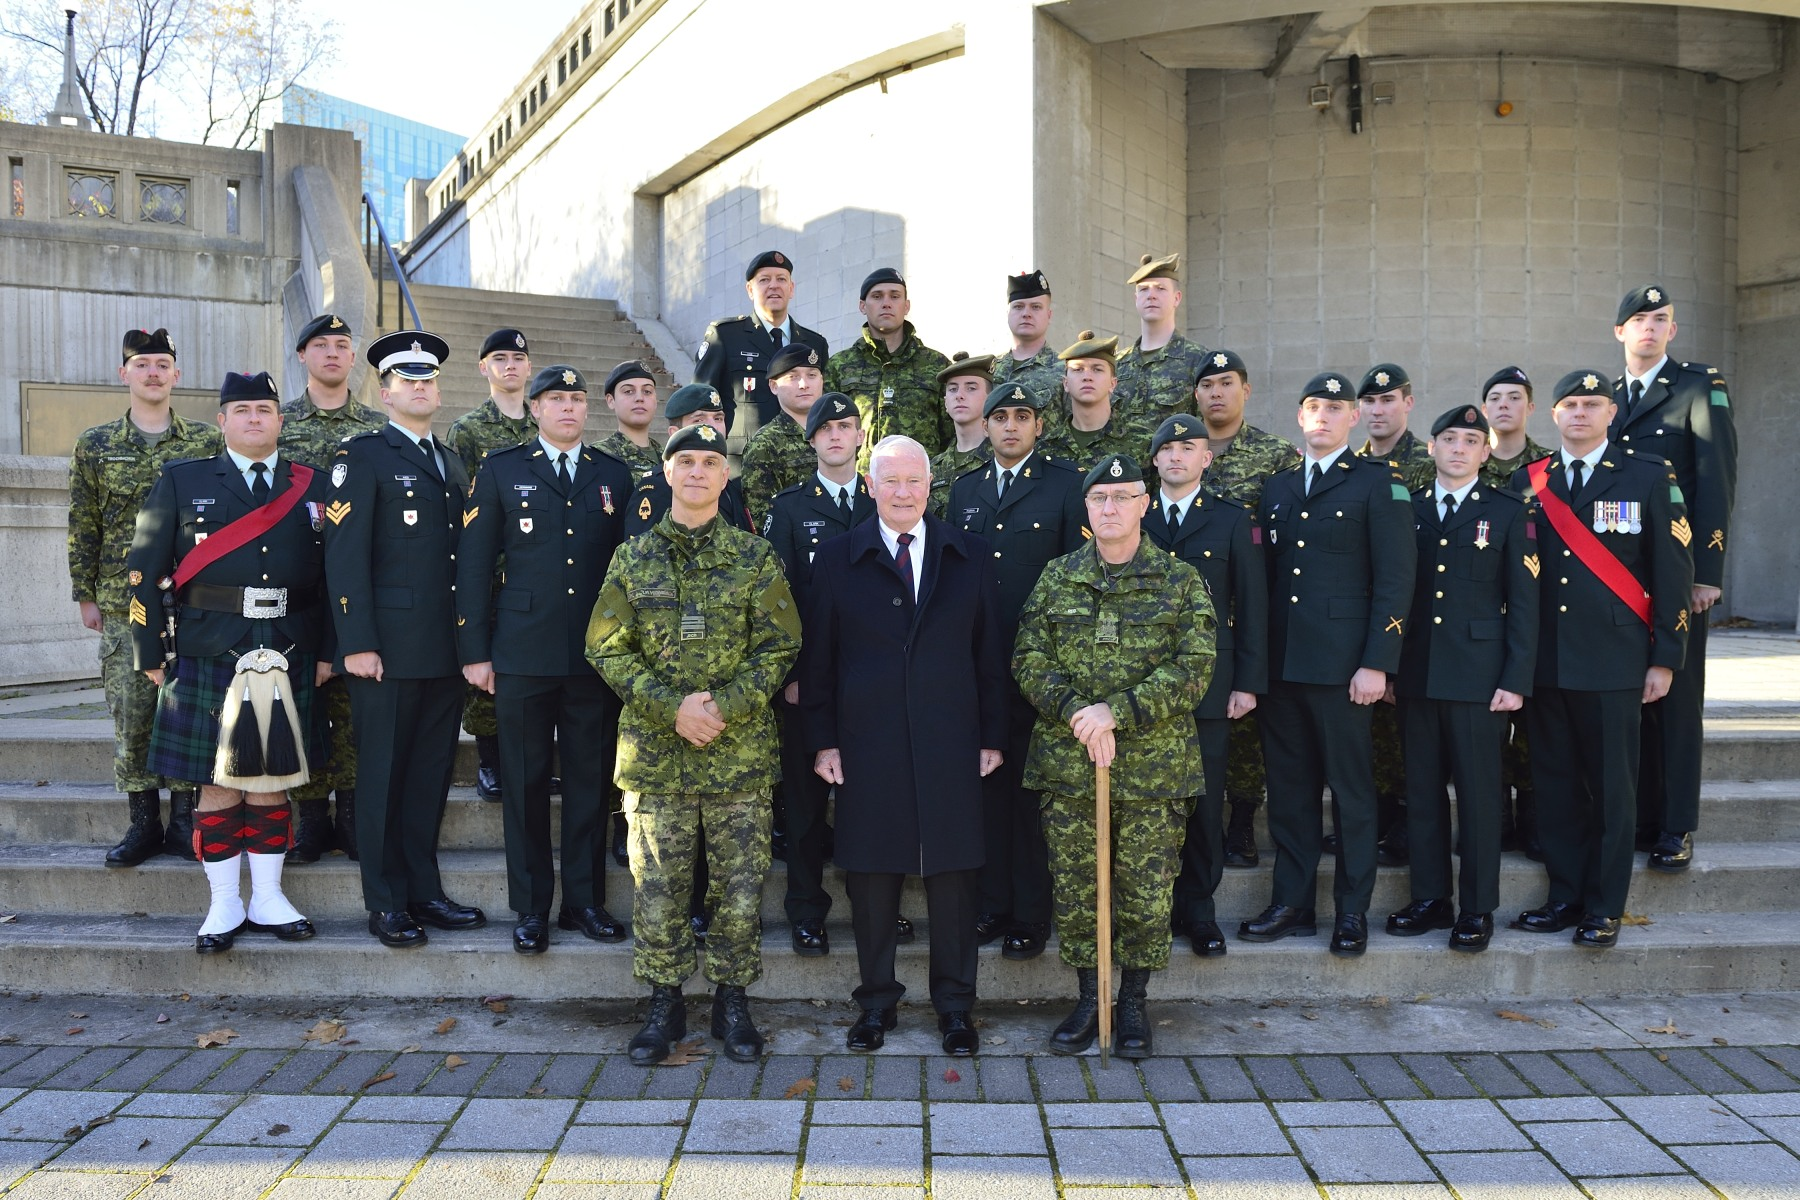 Photo of His Excellency with members of the National Sentry Program.